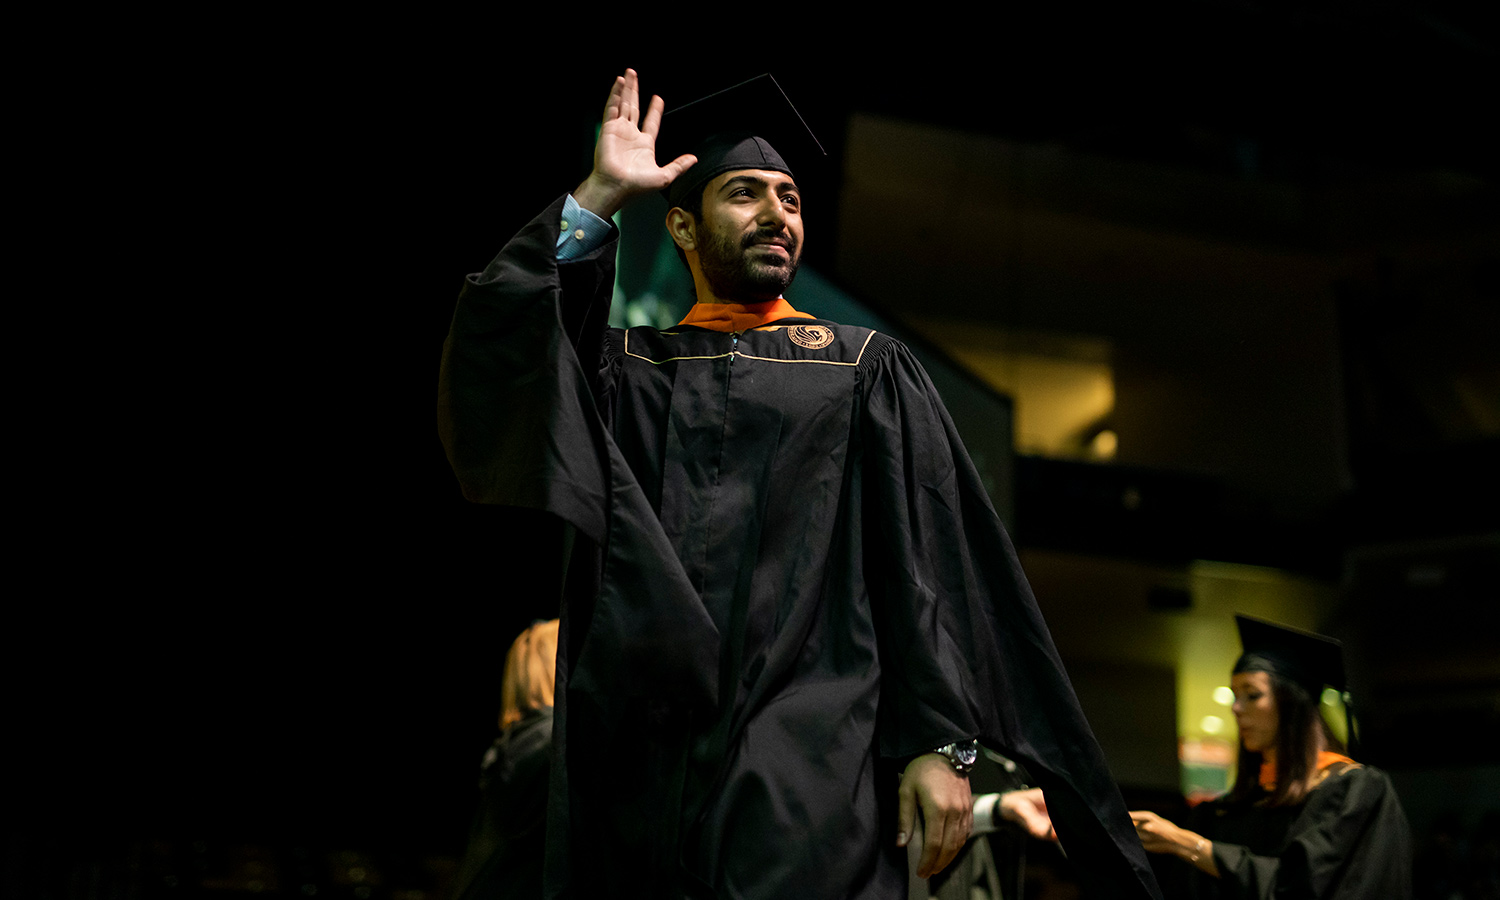 Successful student crosses the stage at graduation.